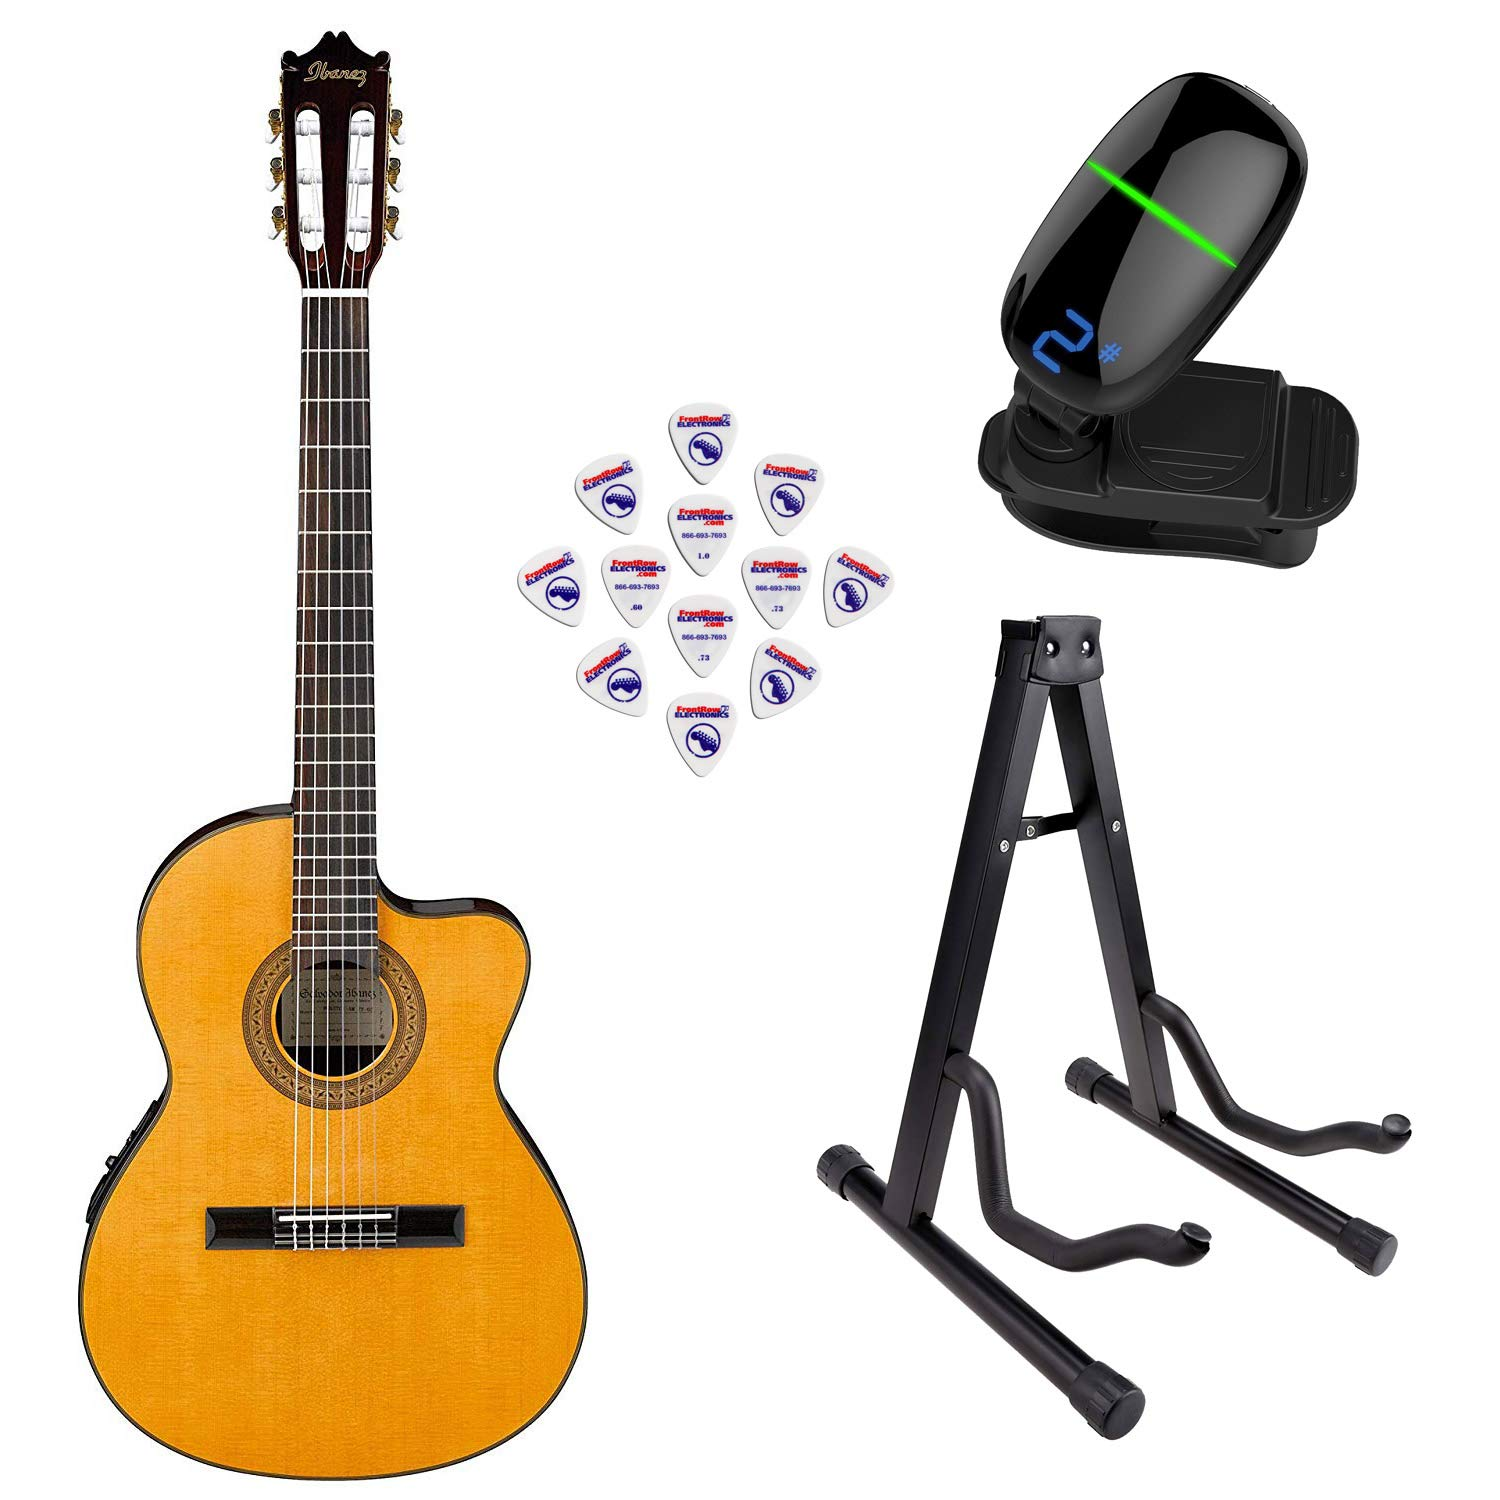 Ibanez GA5TCE 6 String Classical Guitar - Amber High Gloss with Front Row Guitar Stand, tuner and pick sampler (IbaGA5TCE Bundle3)